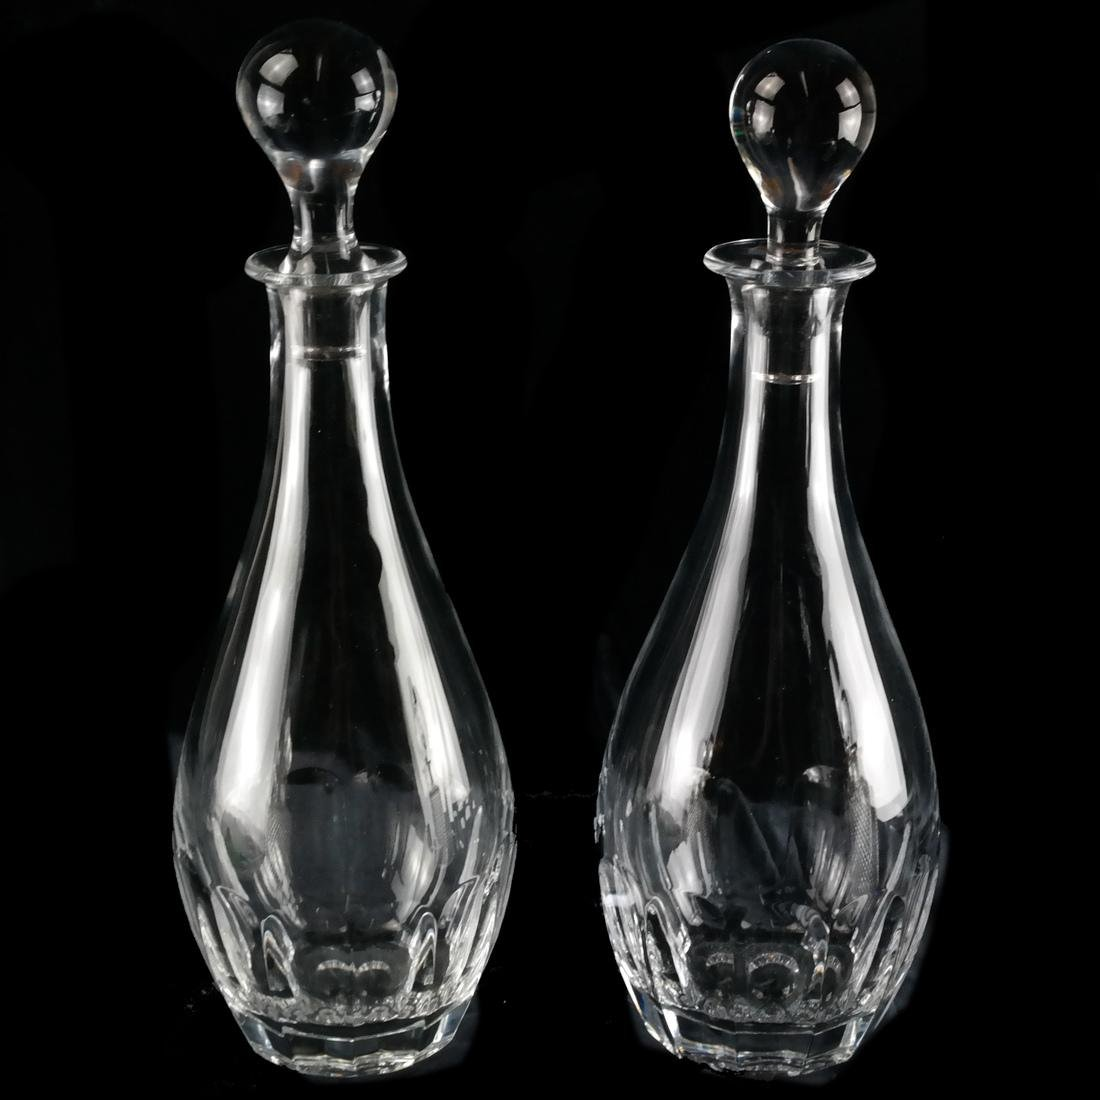 Two Pairs of Decanters - 2